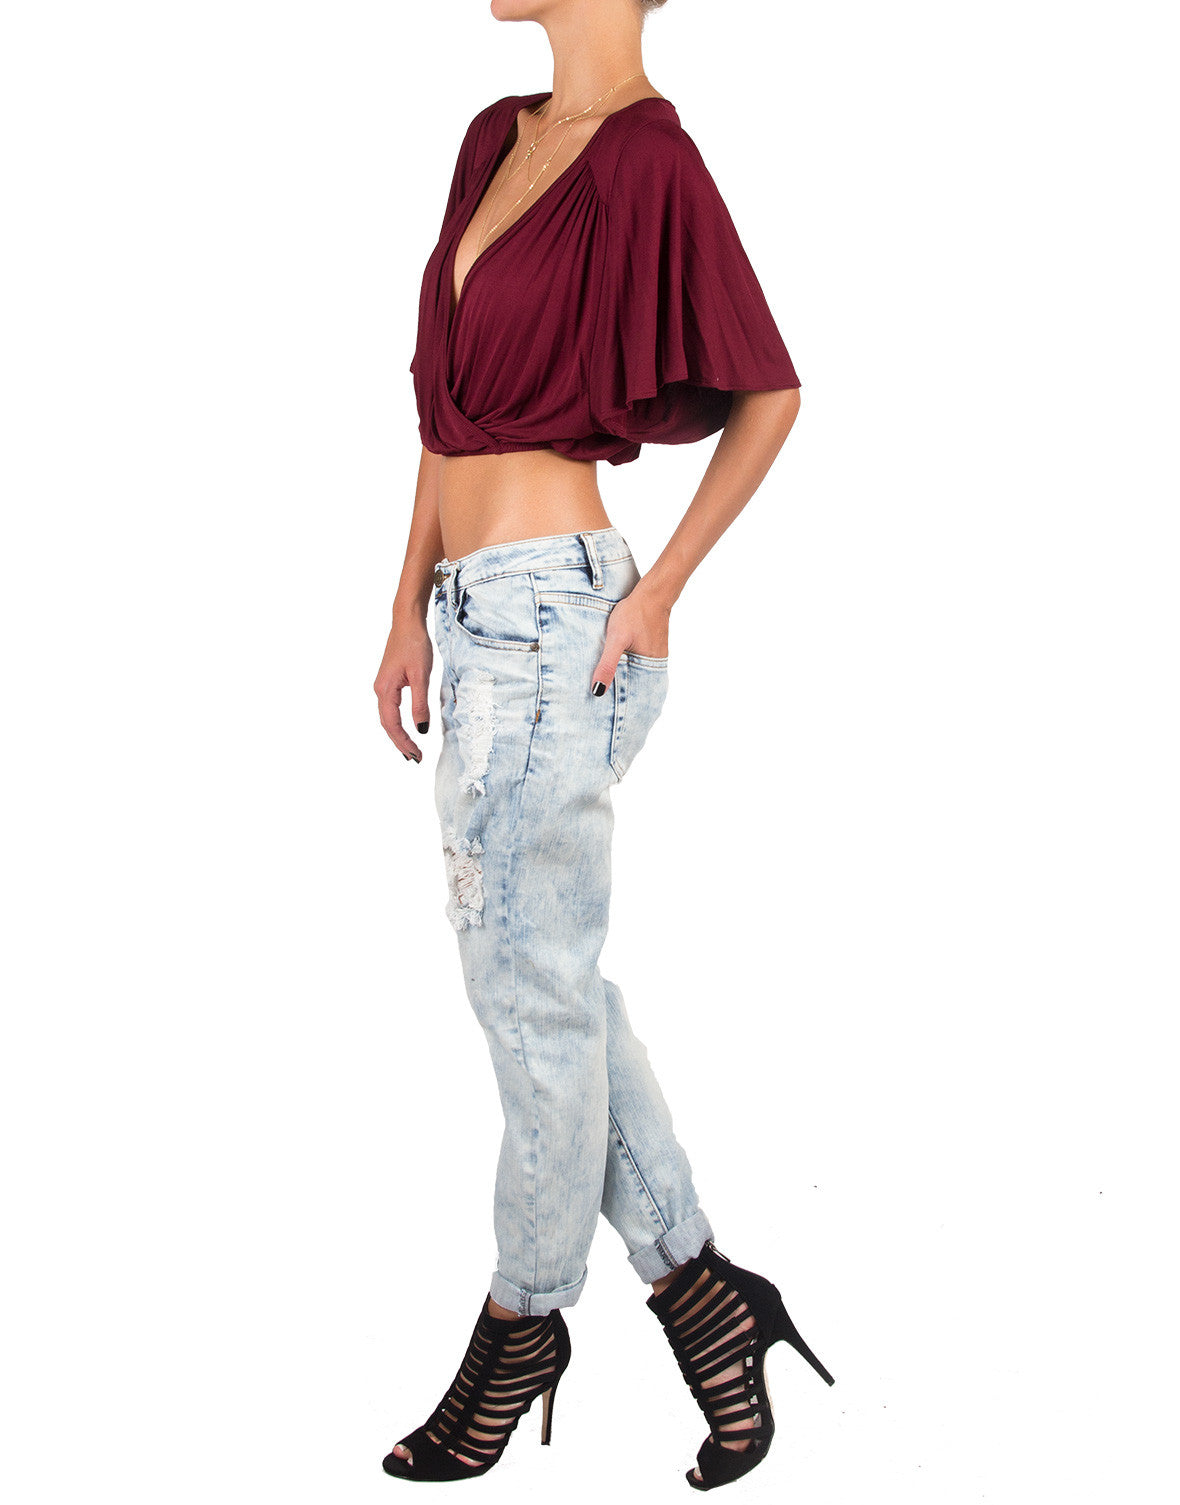 Deep Wrap V-Neck Top - Burgundy - Gibiu GMT-2096-Burgundy